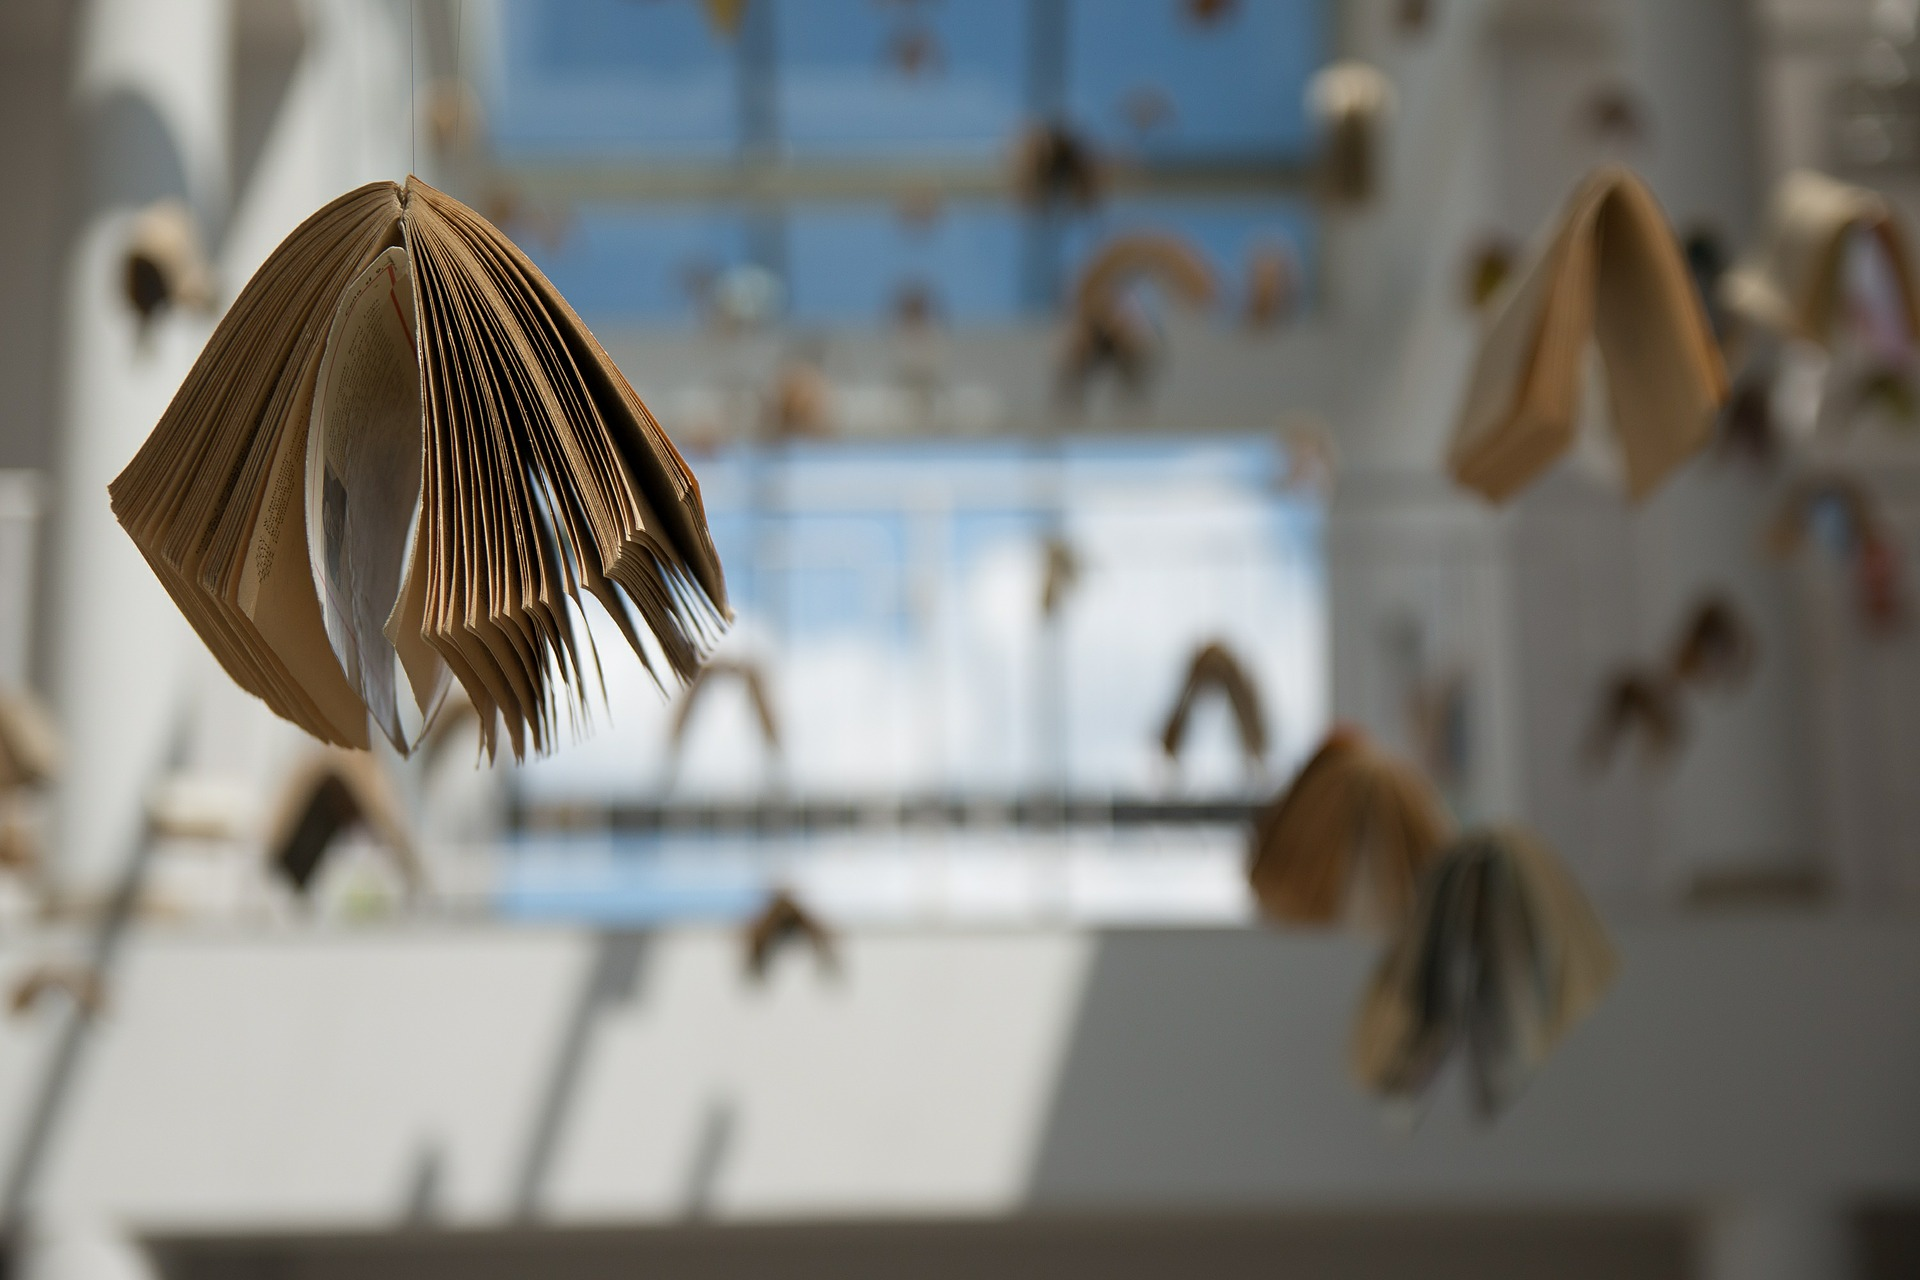 Photo of books suspended from the ceiling in a building with windows in the background